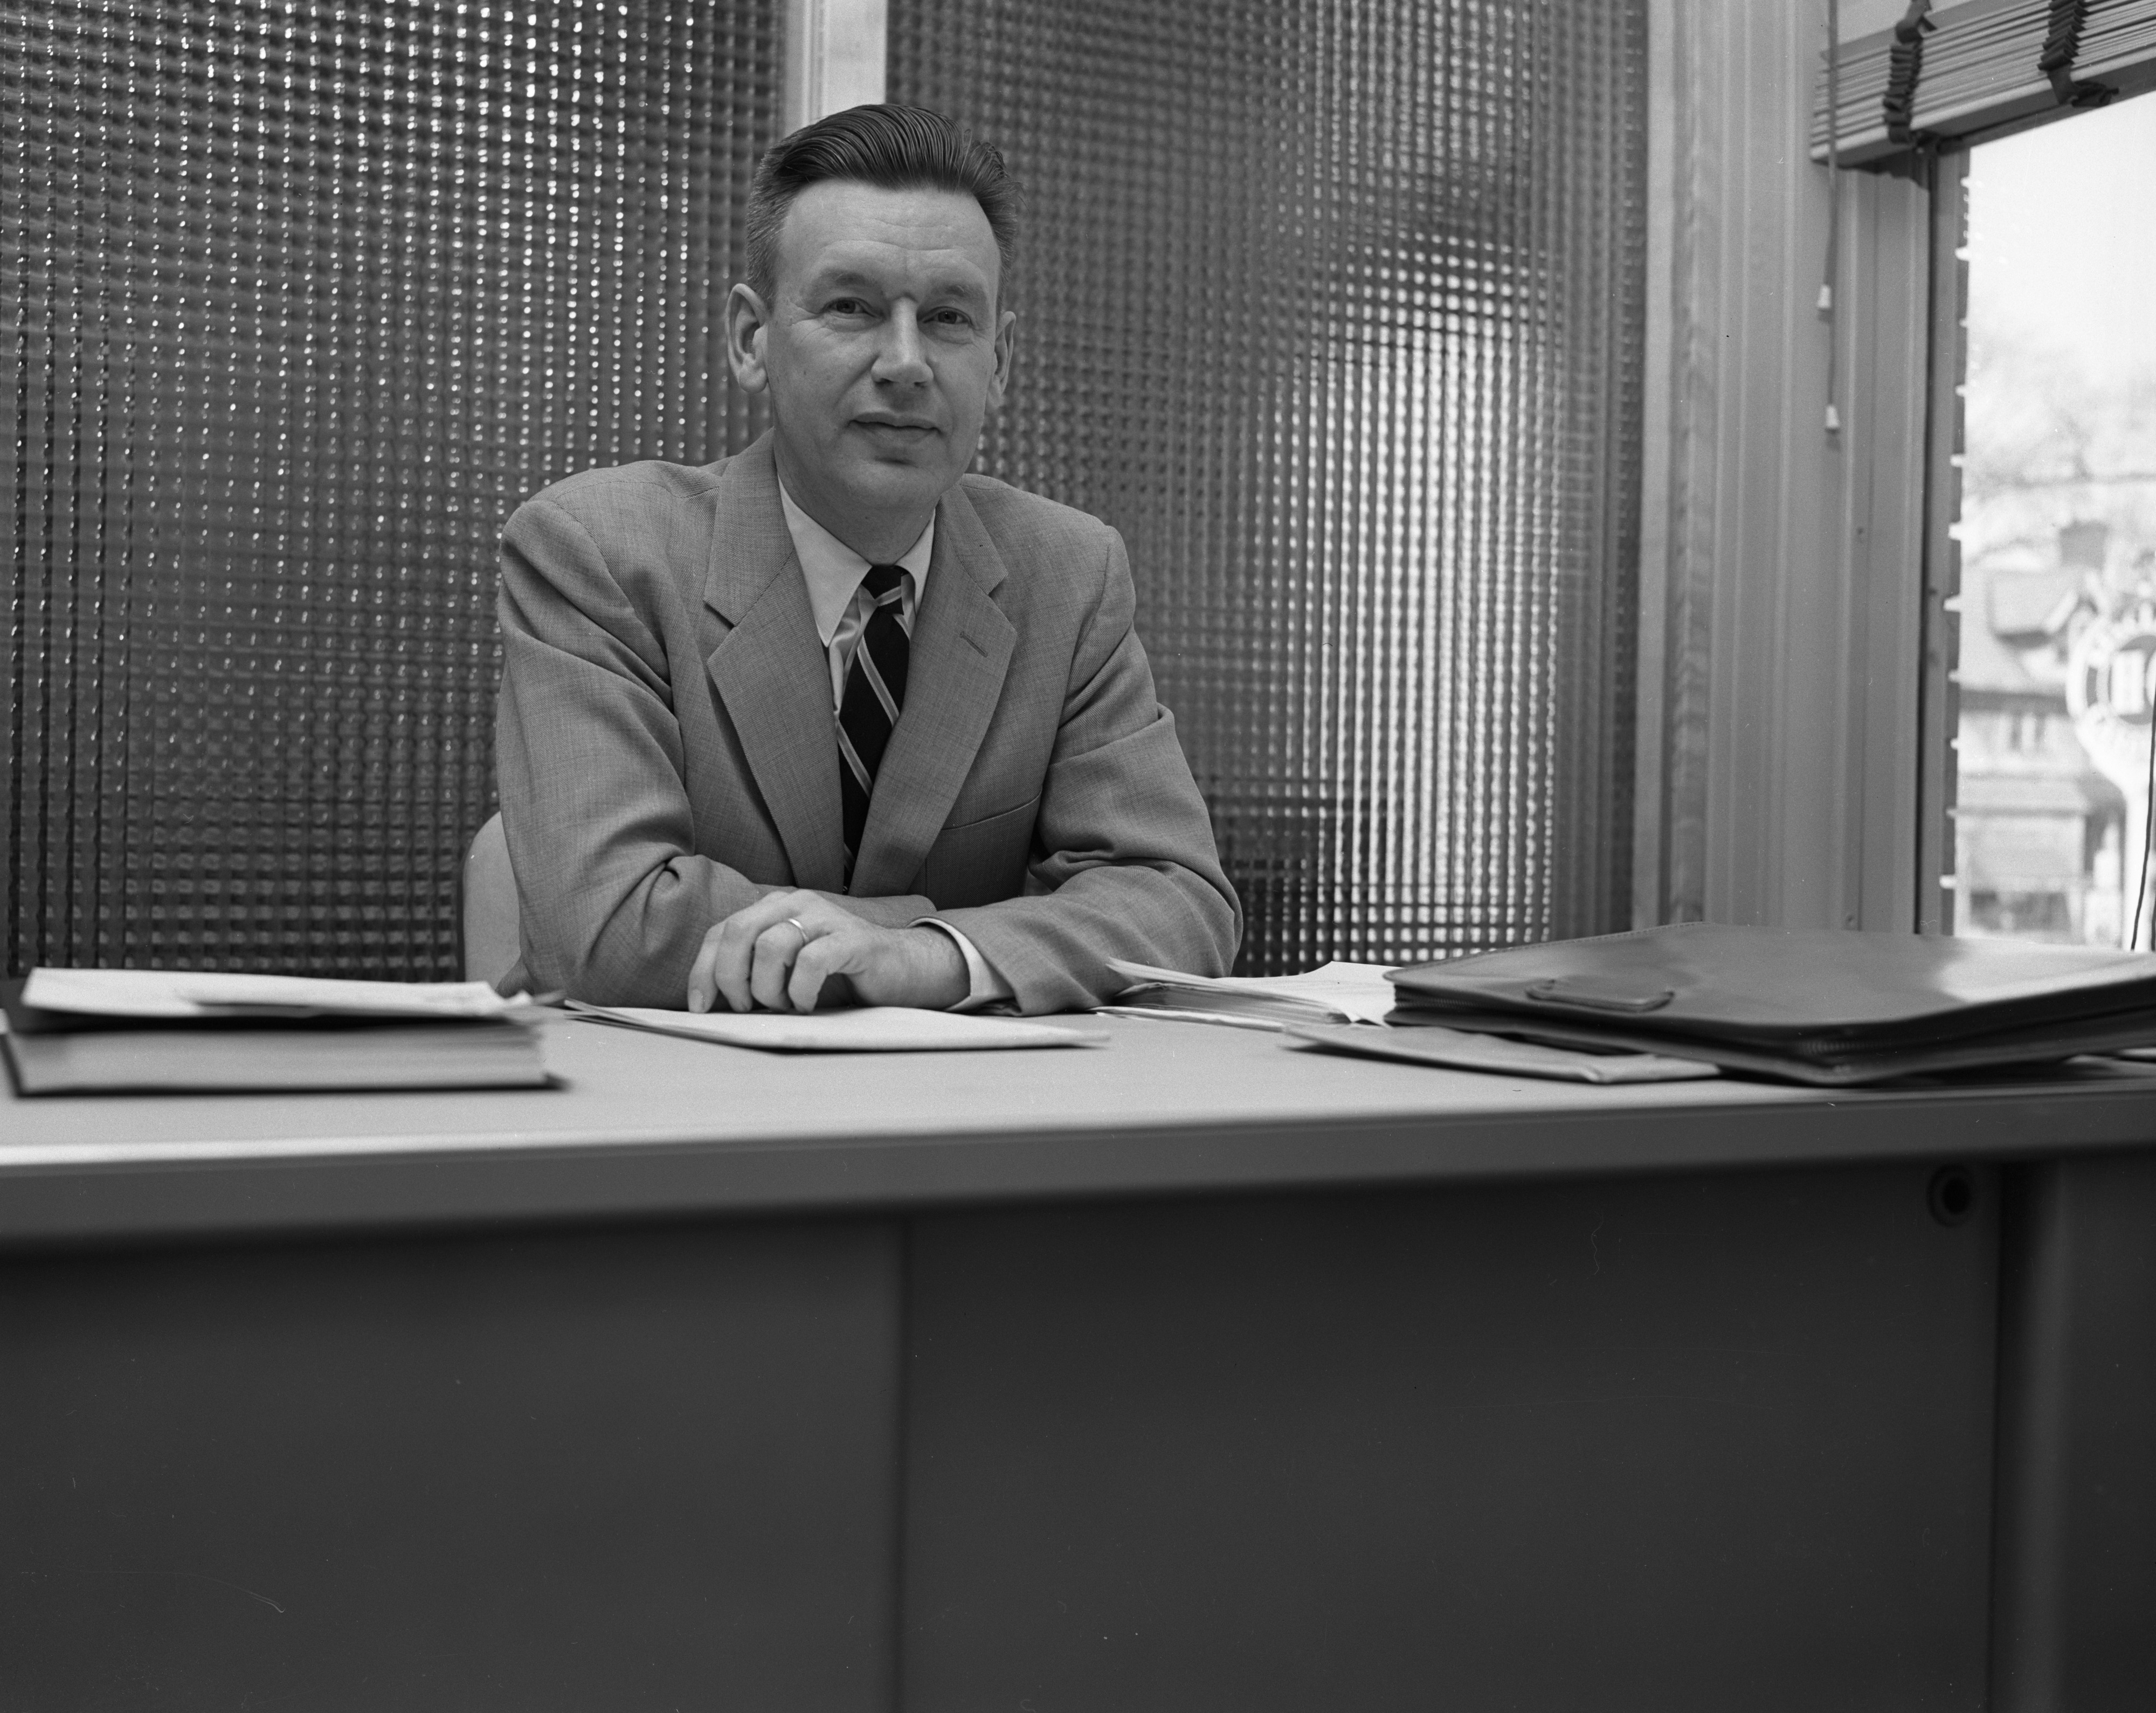 Guy C. Larcom, Jr., at his desk on the first day as Ann Arbor's new city administrator, April 1956 image